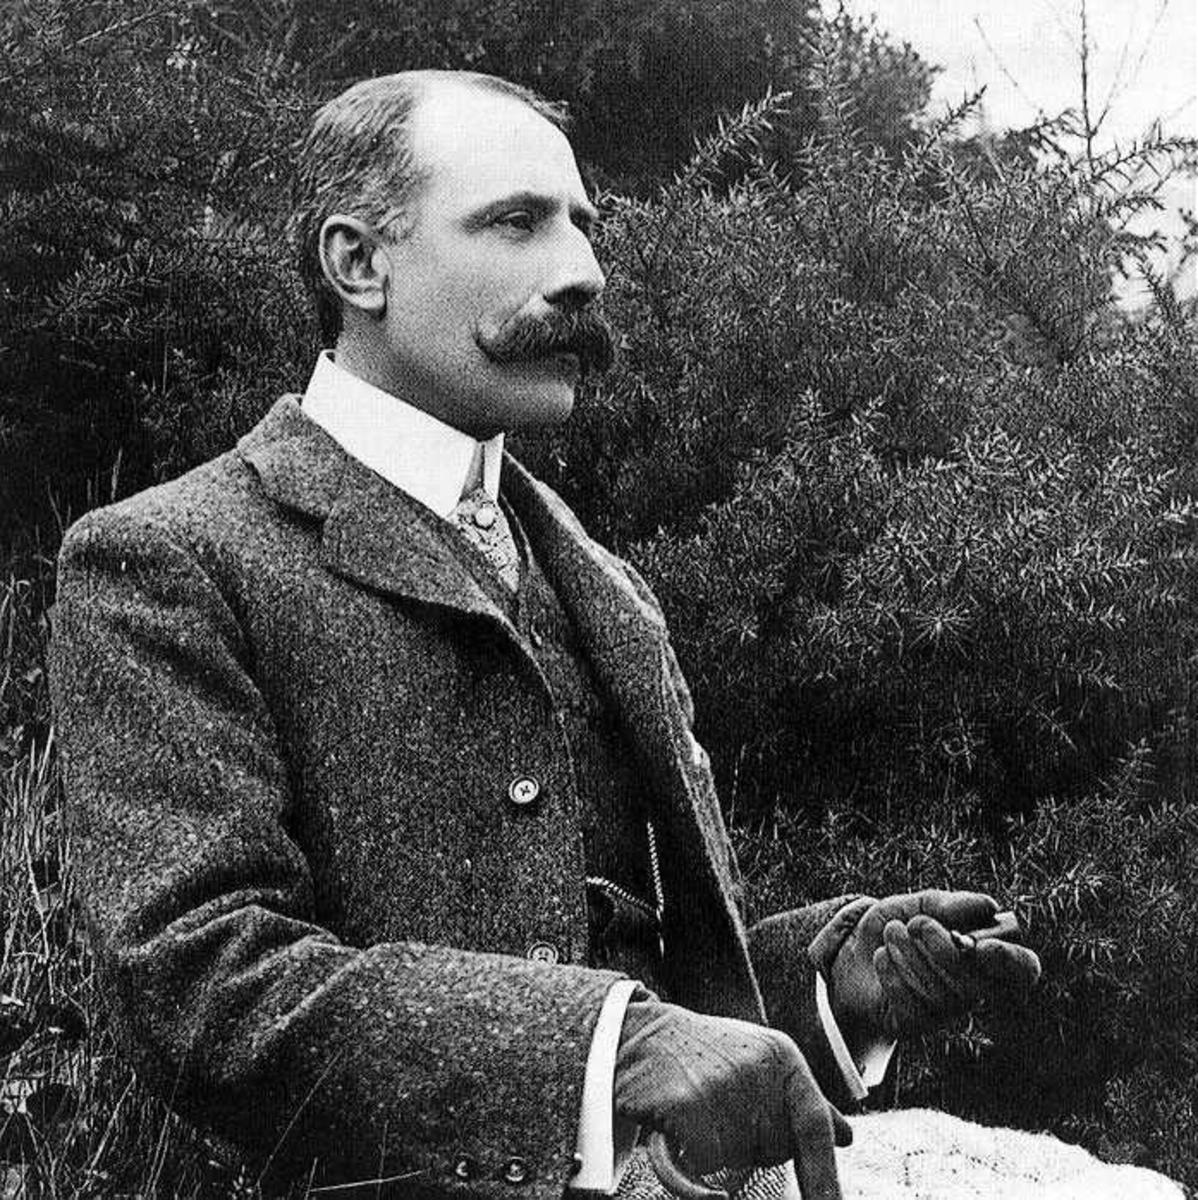 Edward Elgar 1857-1934  Photograph of Elgar in the early 1900s.